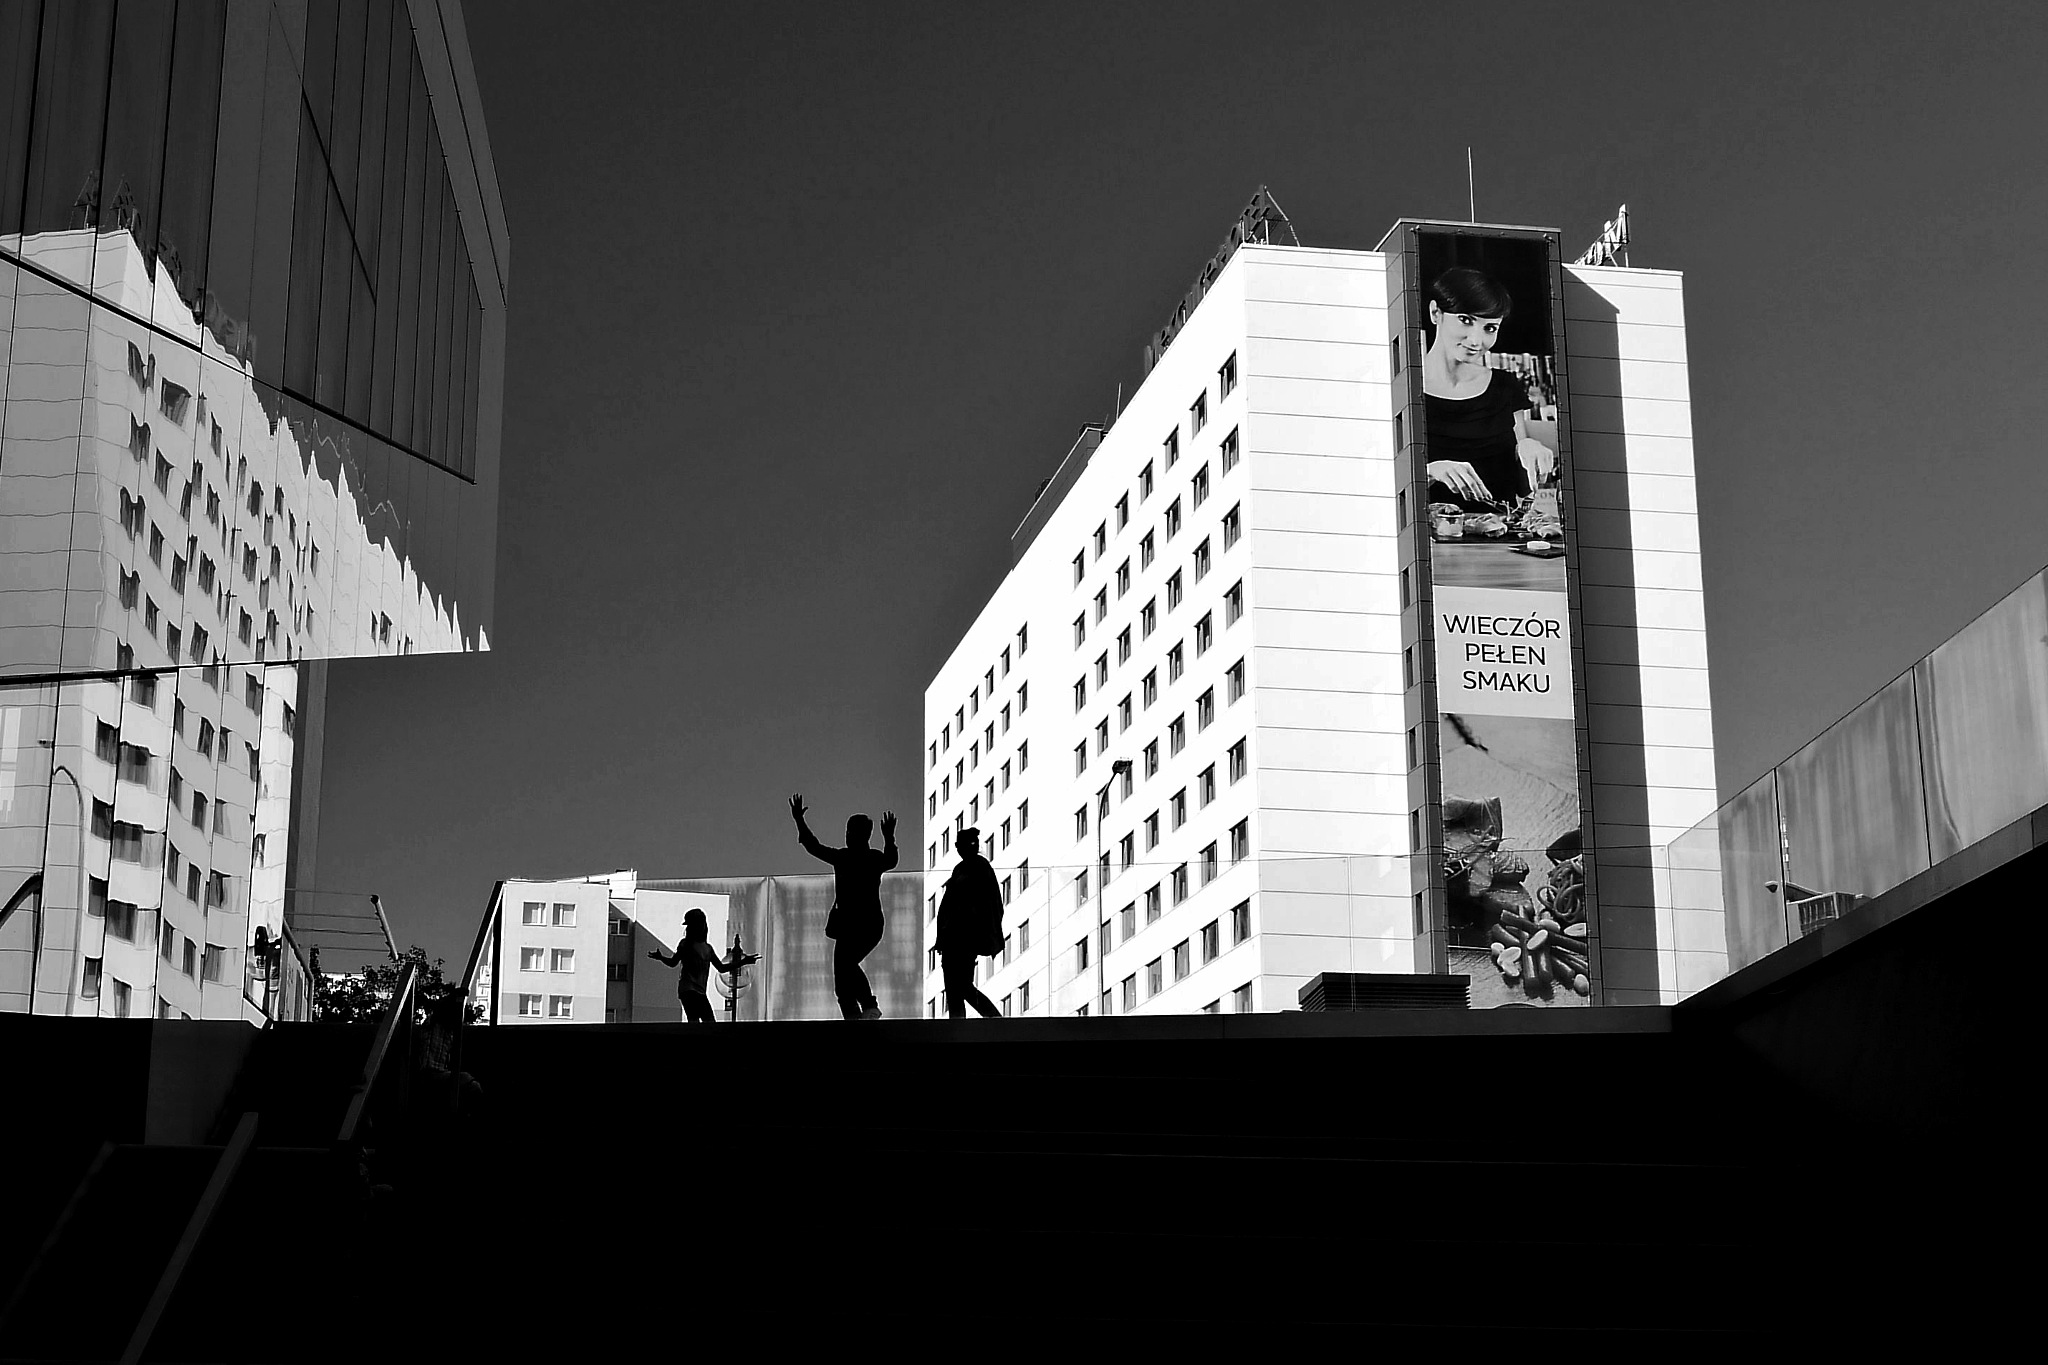 WOW! Teatr cieni (suplement) / wow! Shadow theater (supplement) by ewa_no